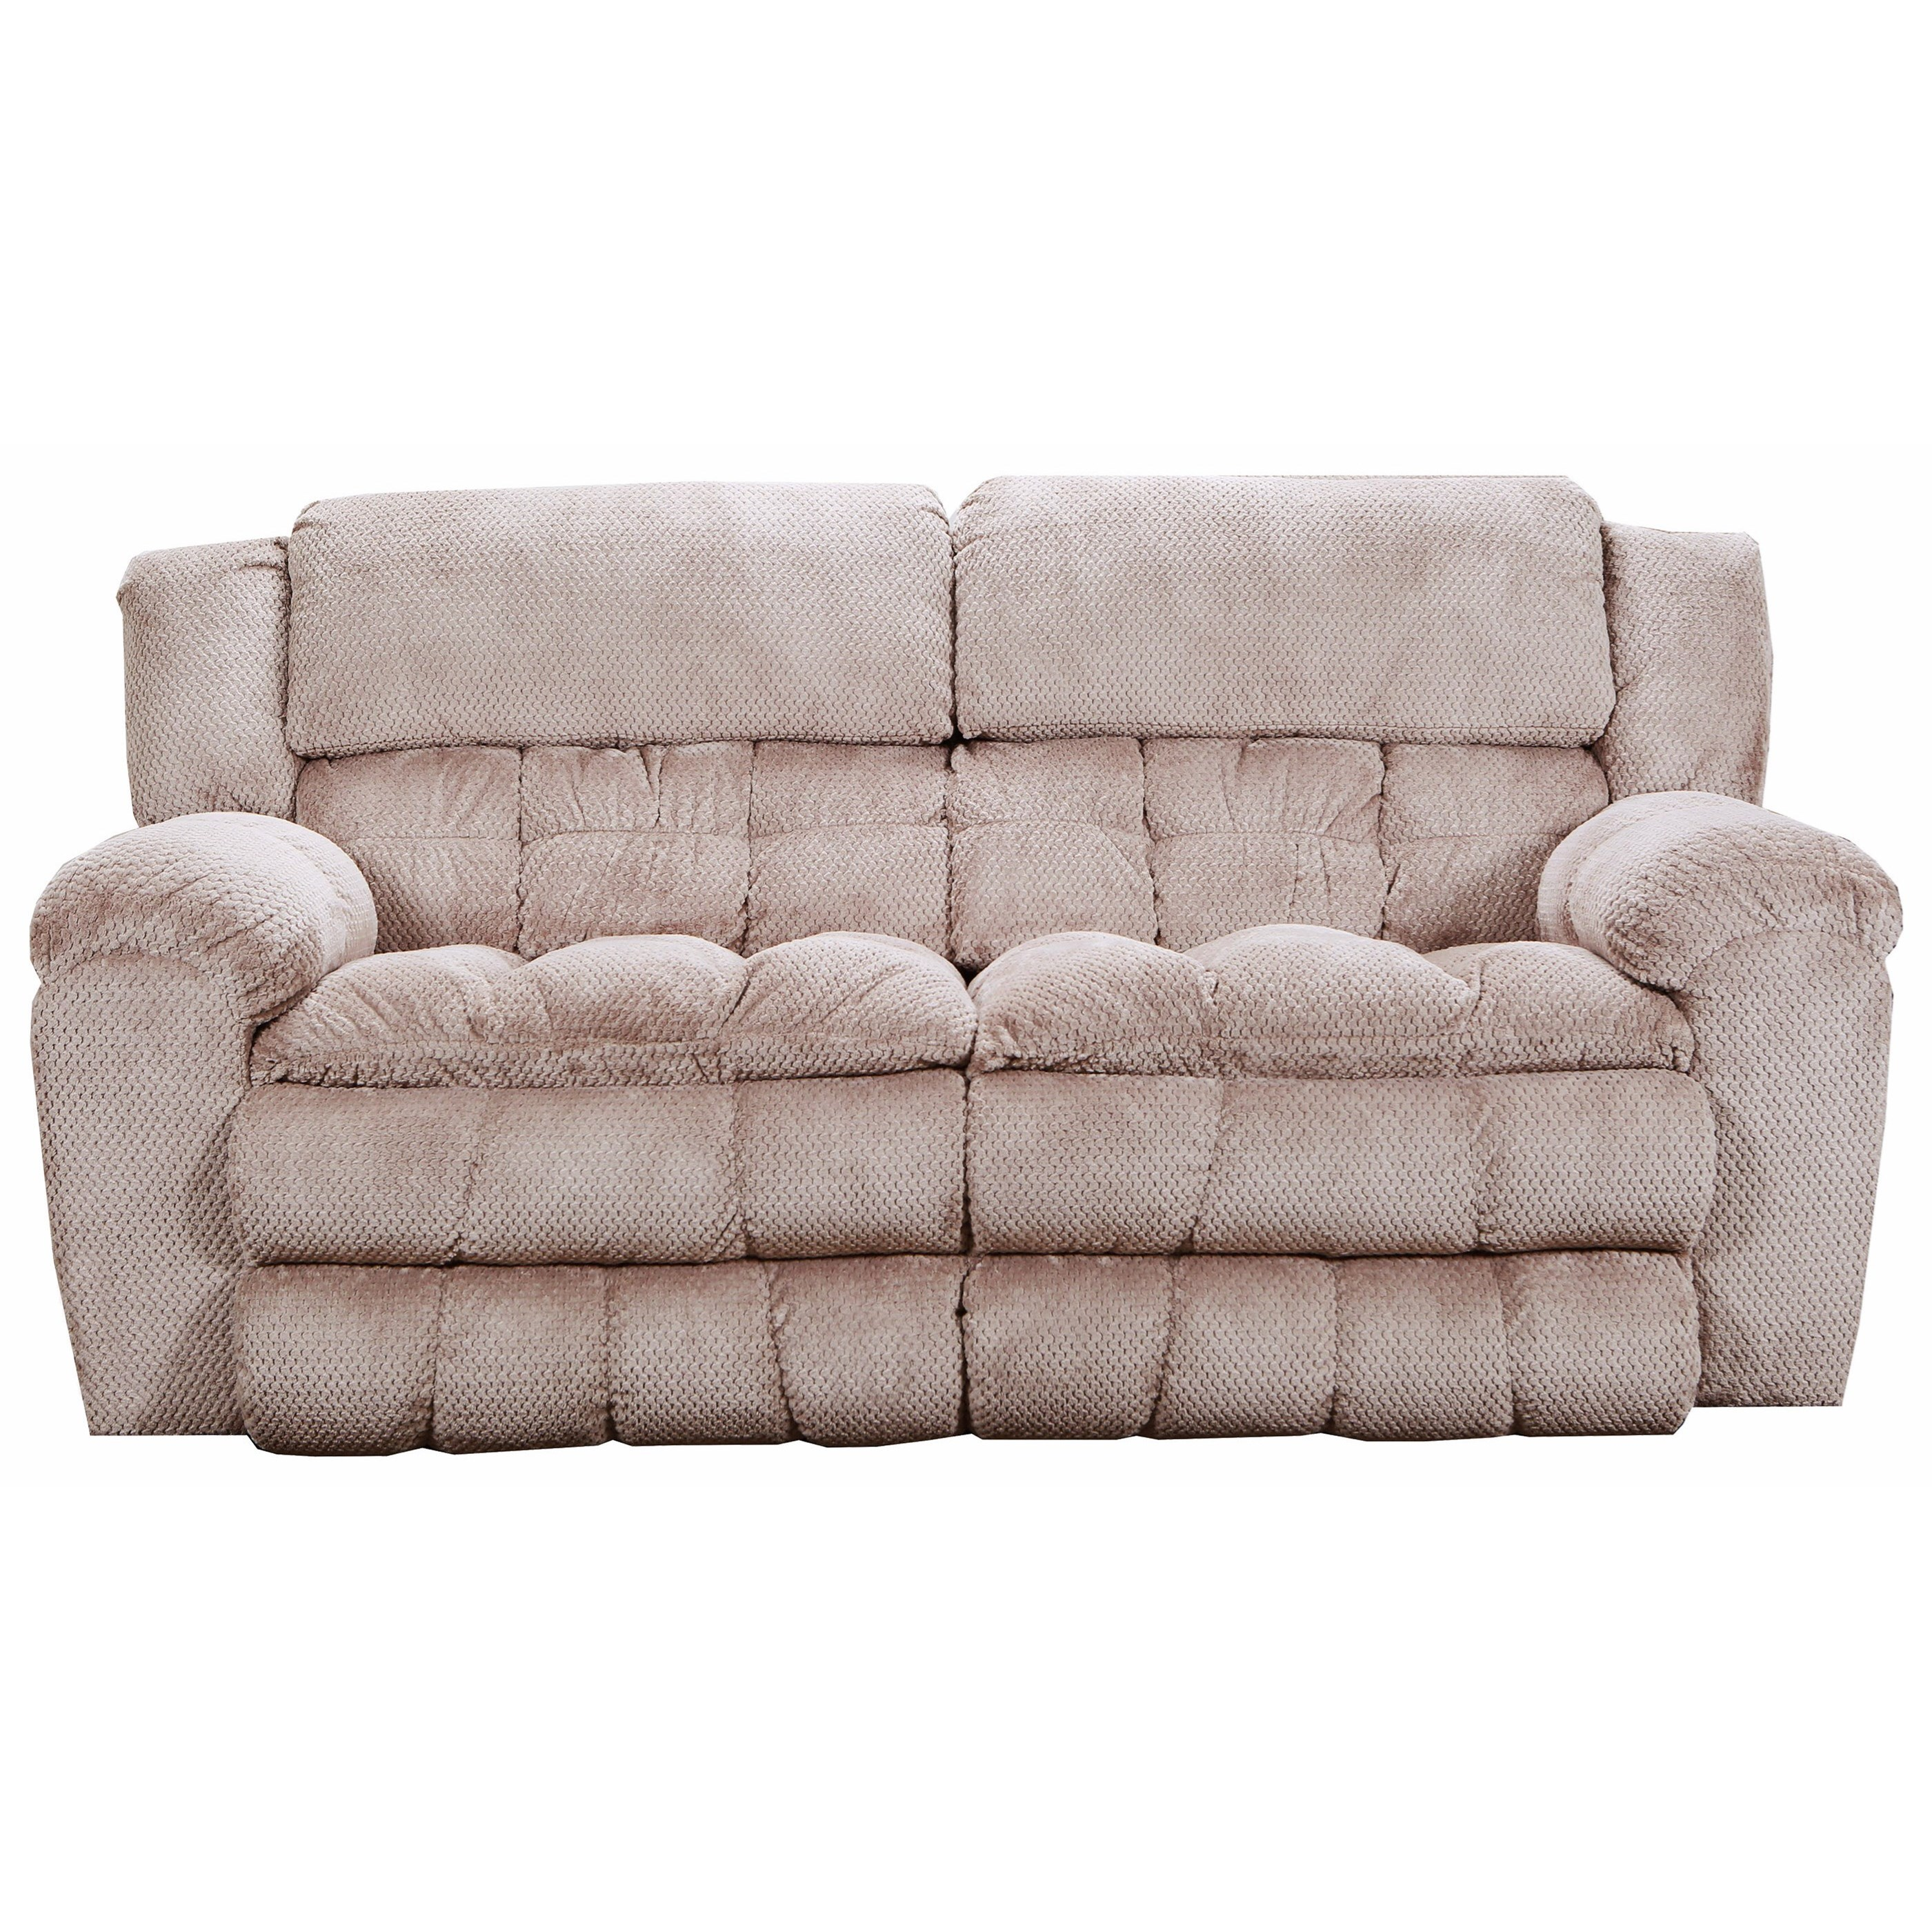 United Furniture Industries 50580BR Power Double Motion Sofa - Item Number: 50580BRPSOFA